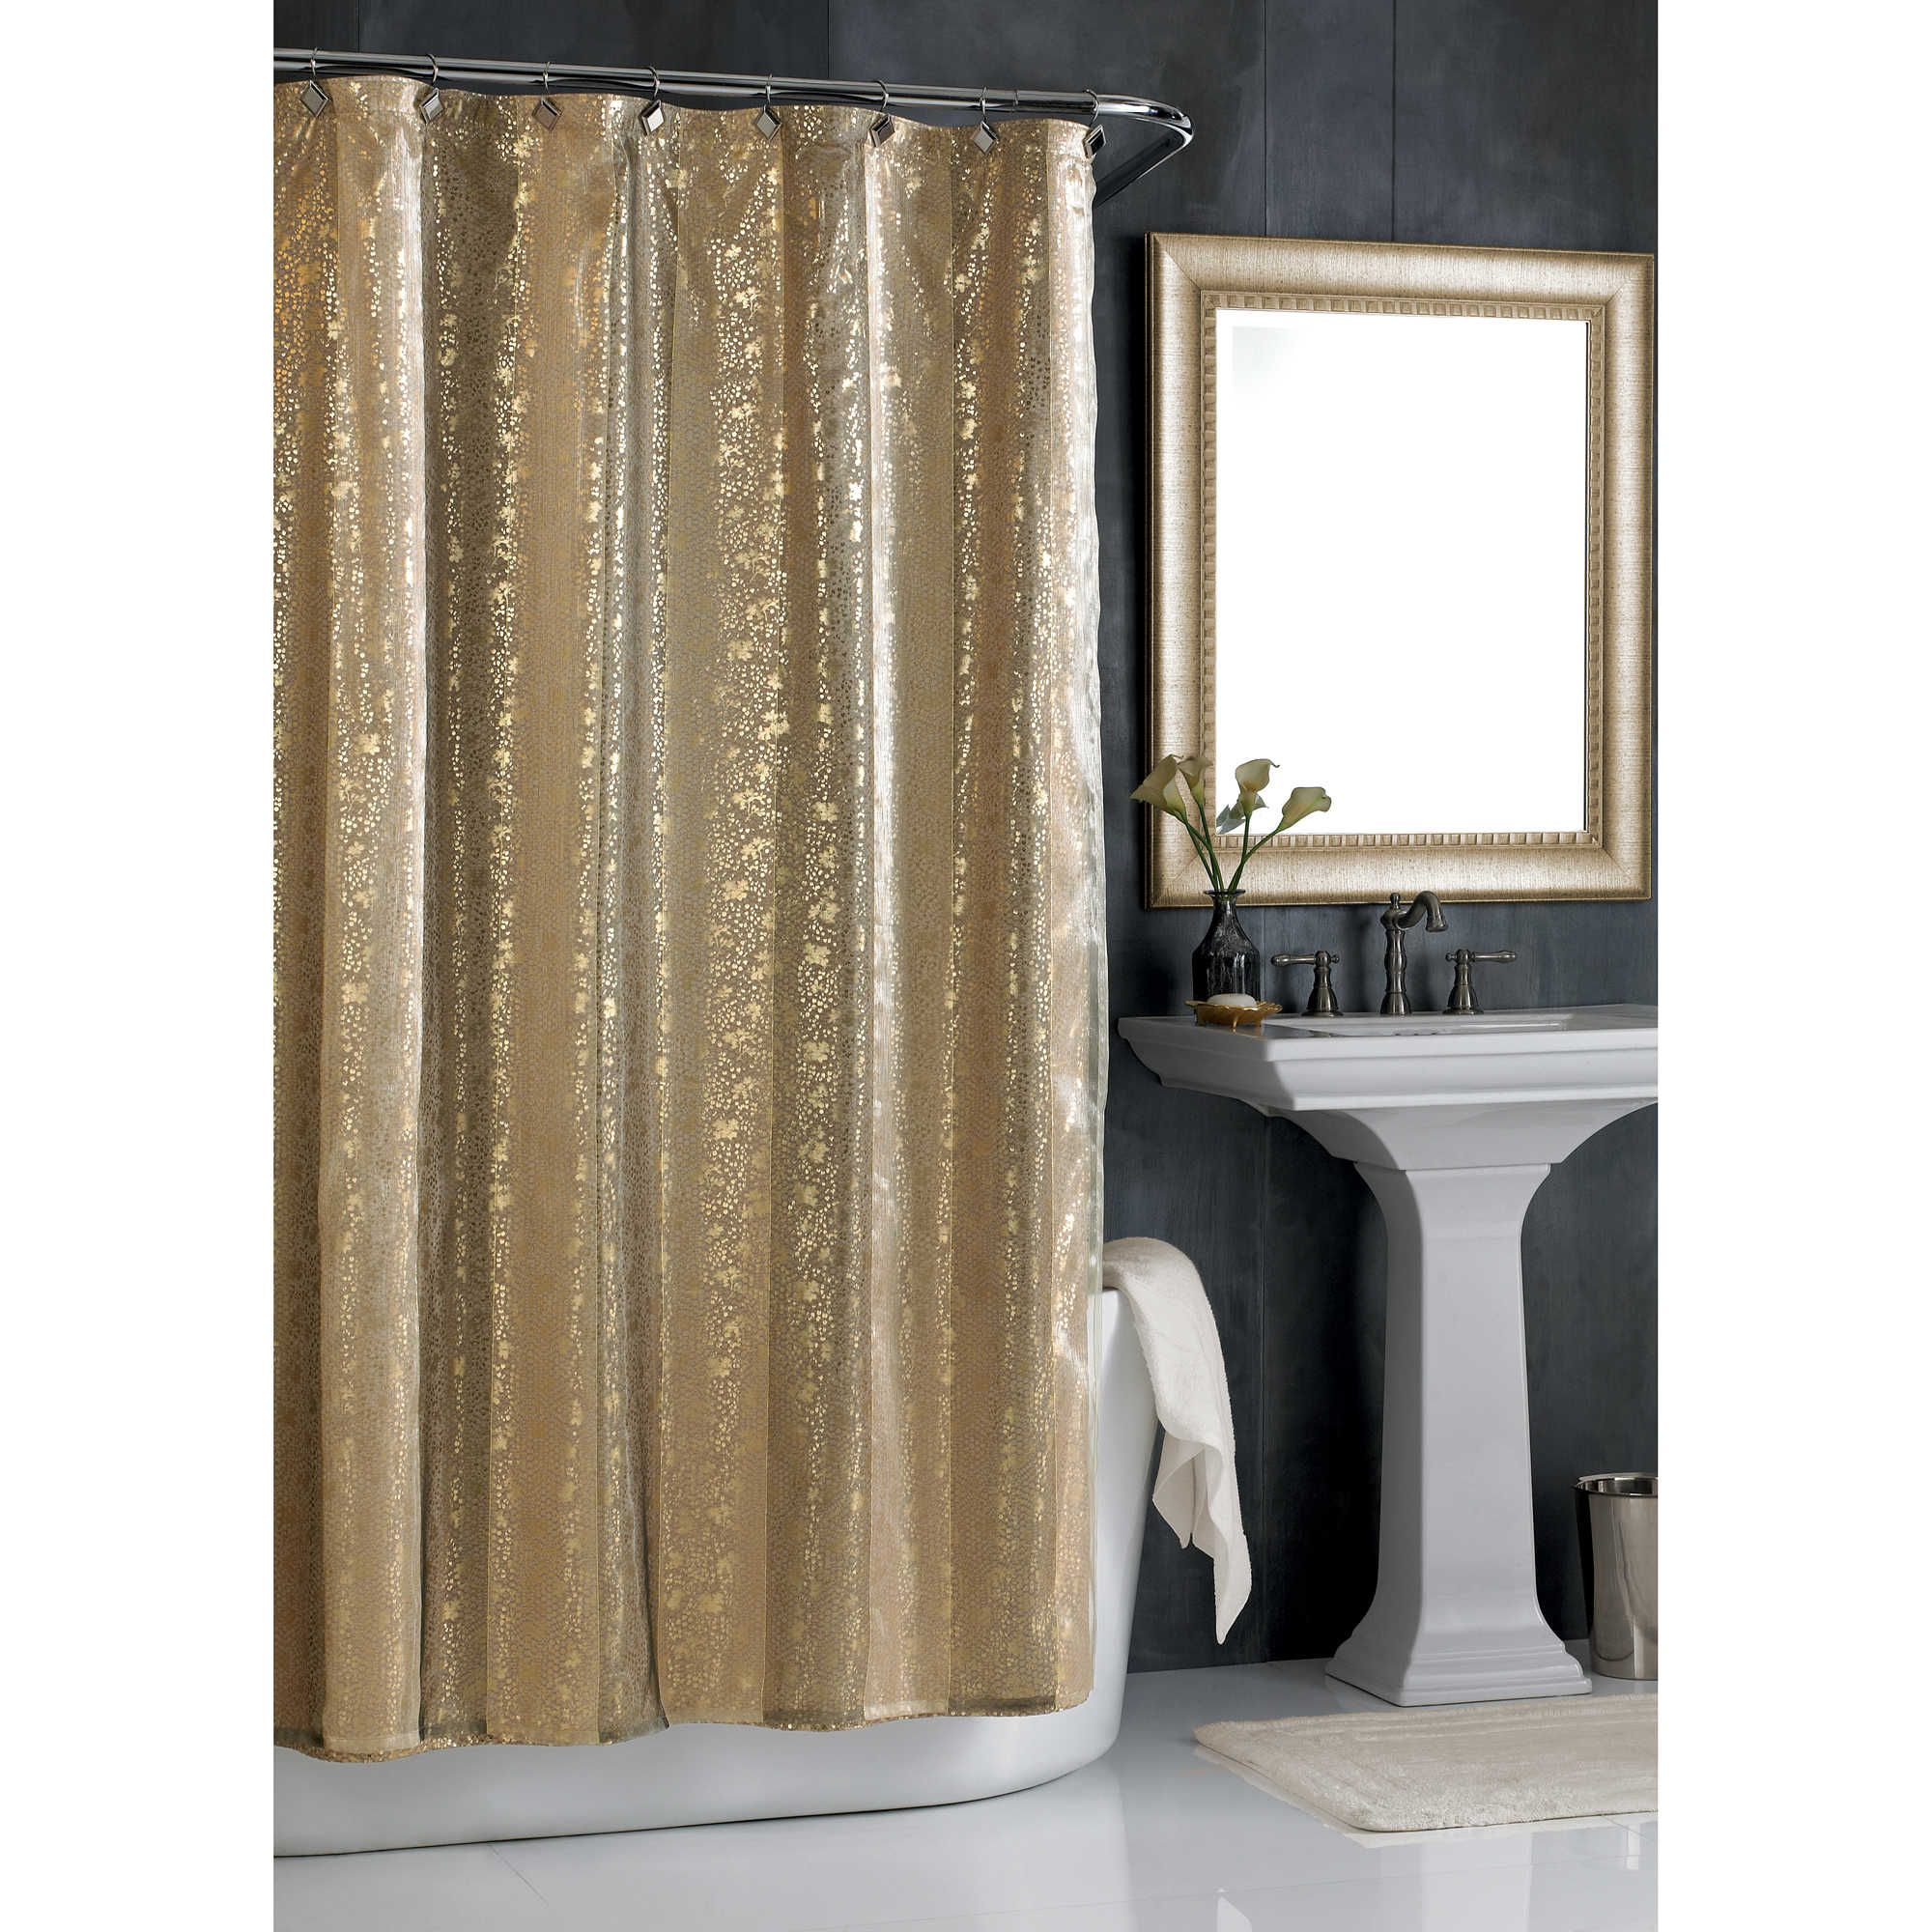 Sheer Bliss Shower Curtain In Gold Gold Shower Curtain Home